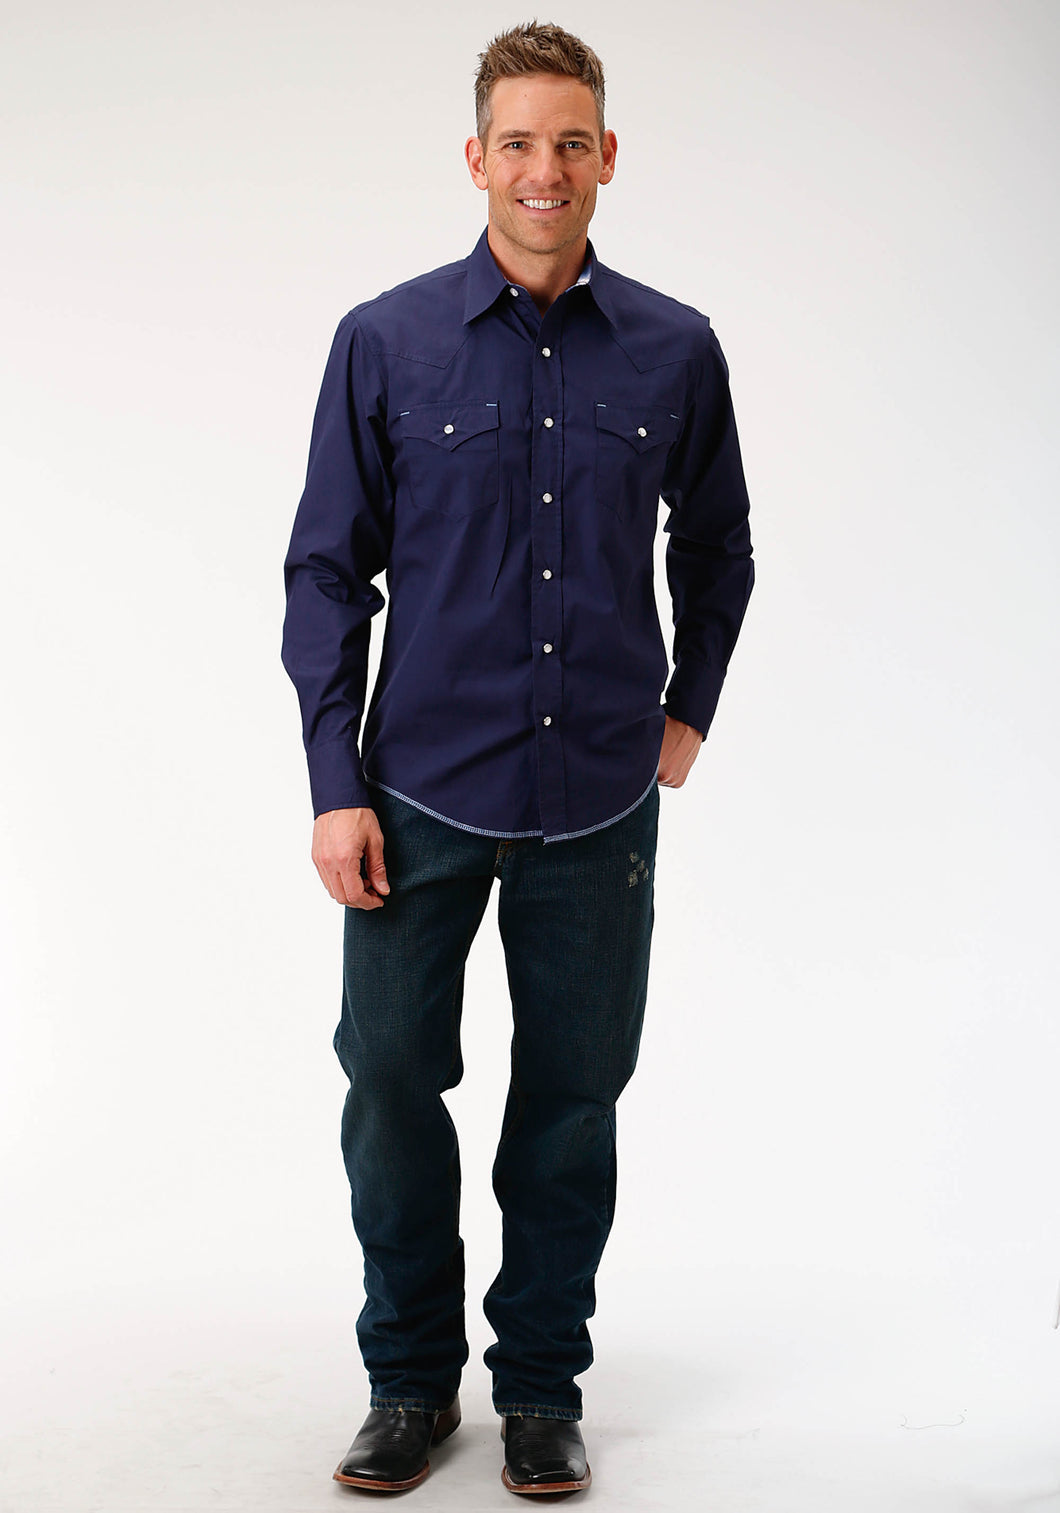 West Made Collection Westm Mens Long Sleeve Shirt 1540 Solid Poplin - Navy